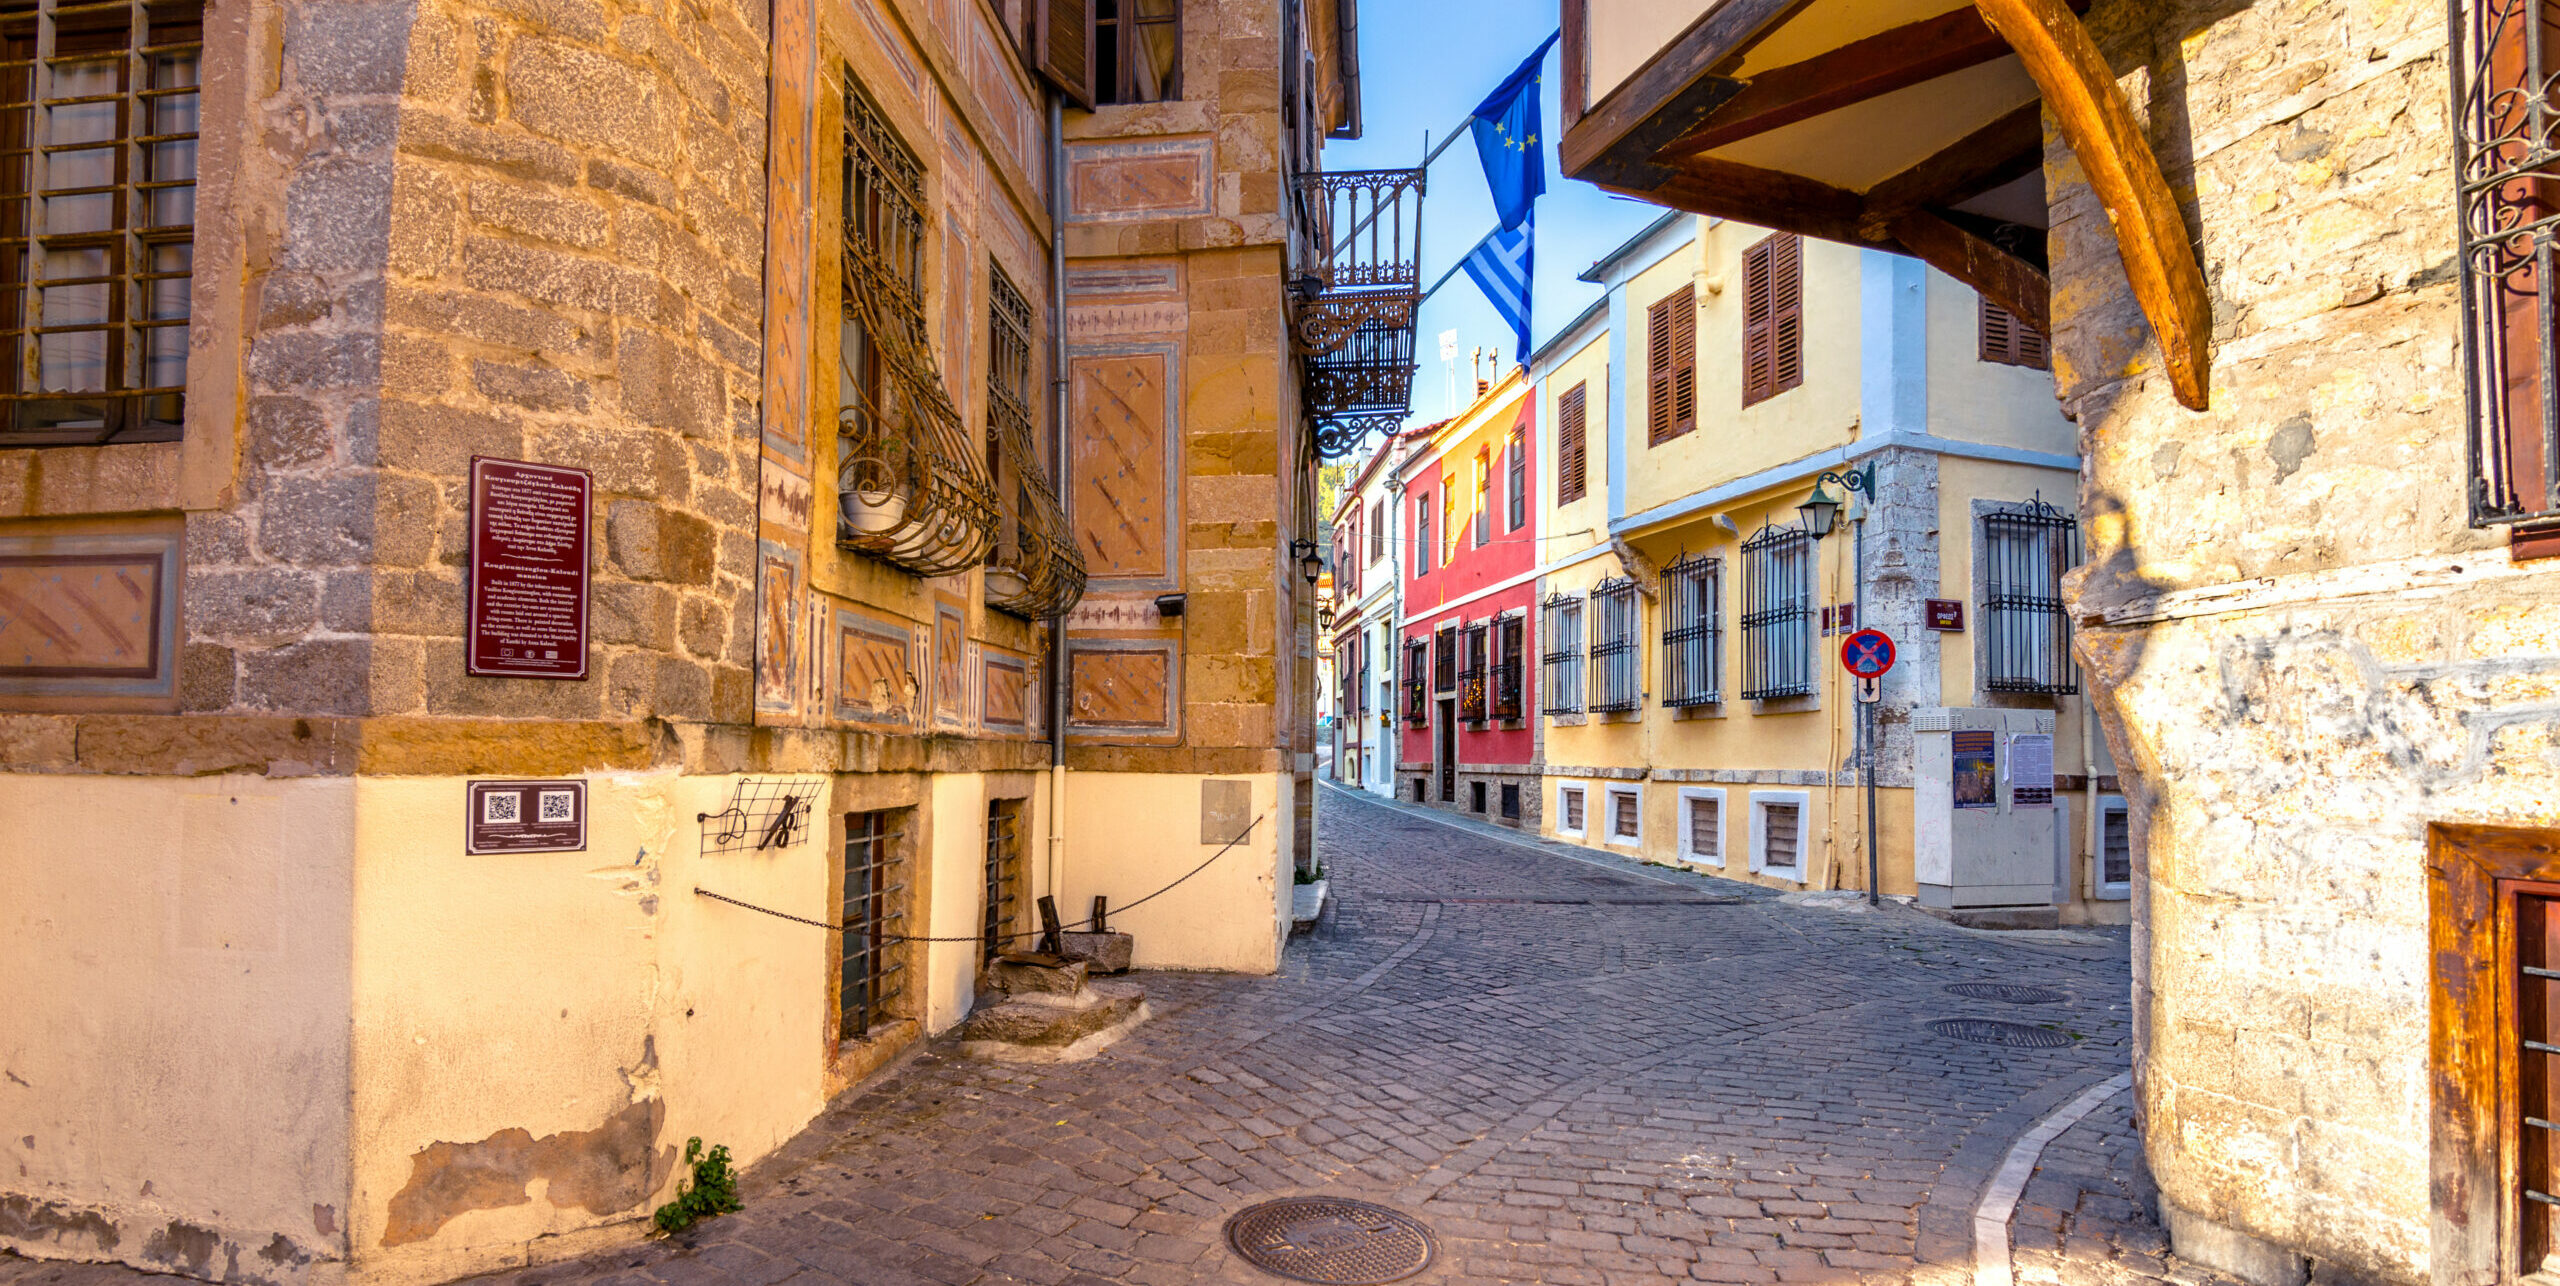 Xanthi: The Old Town is the jewel of Thrace